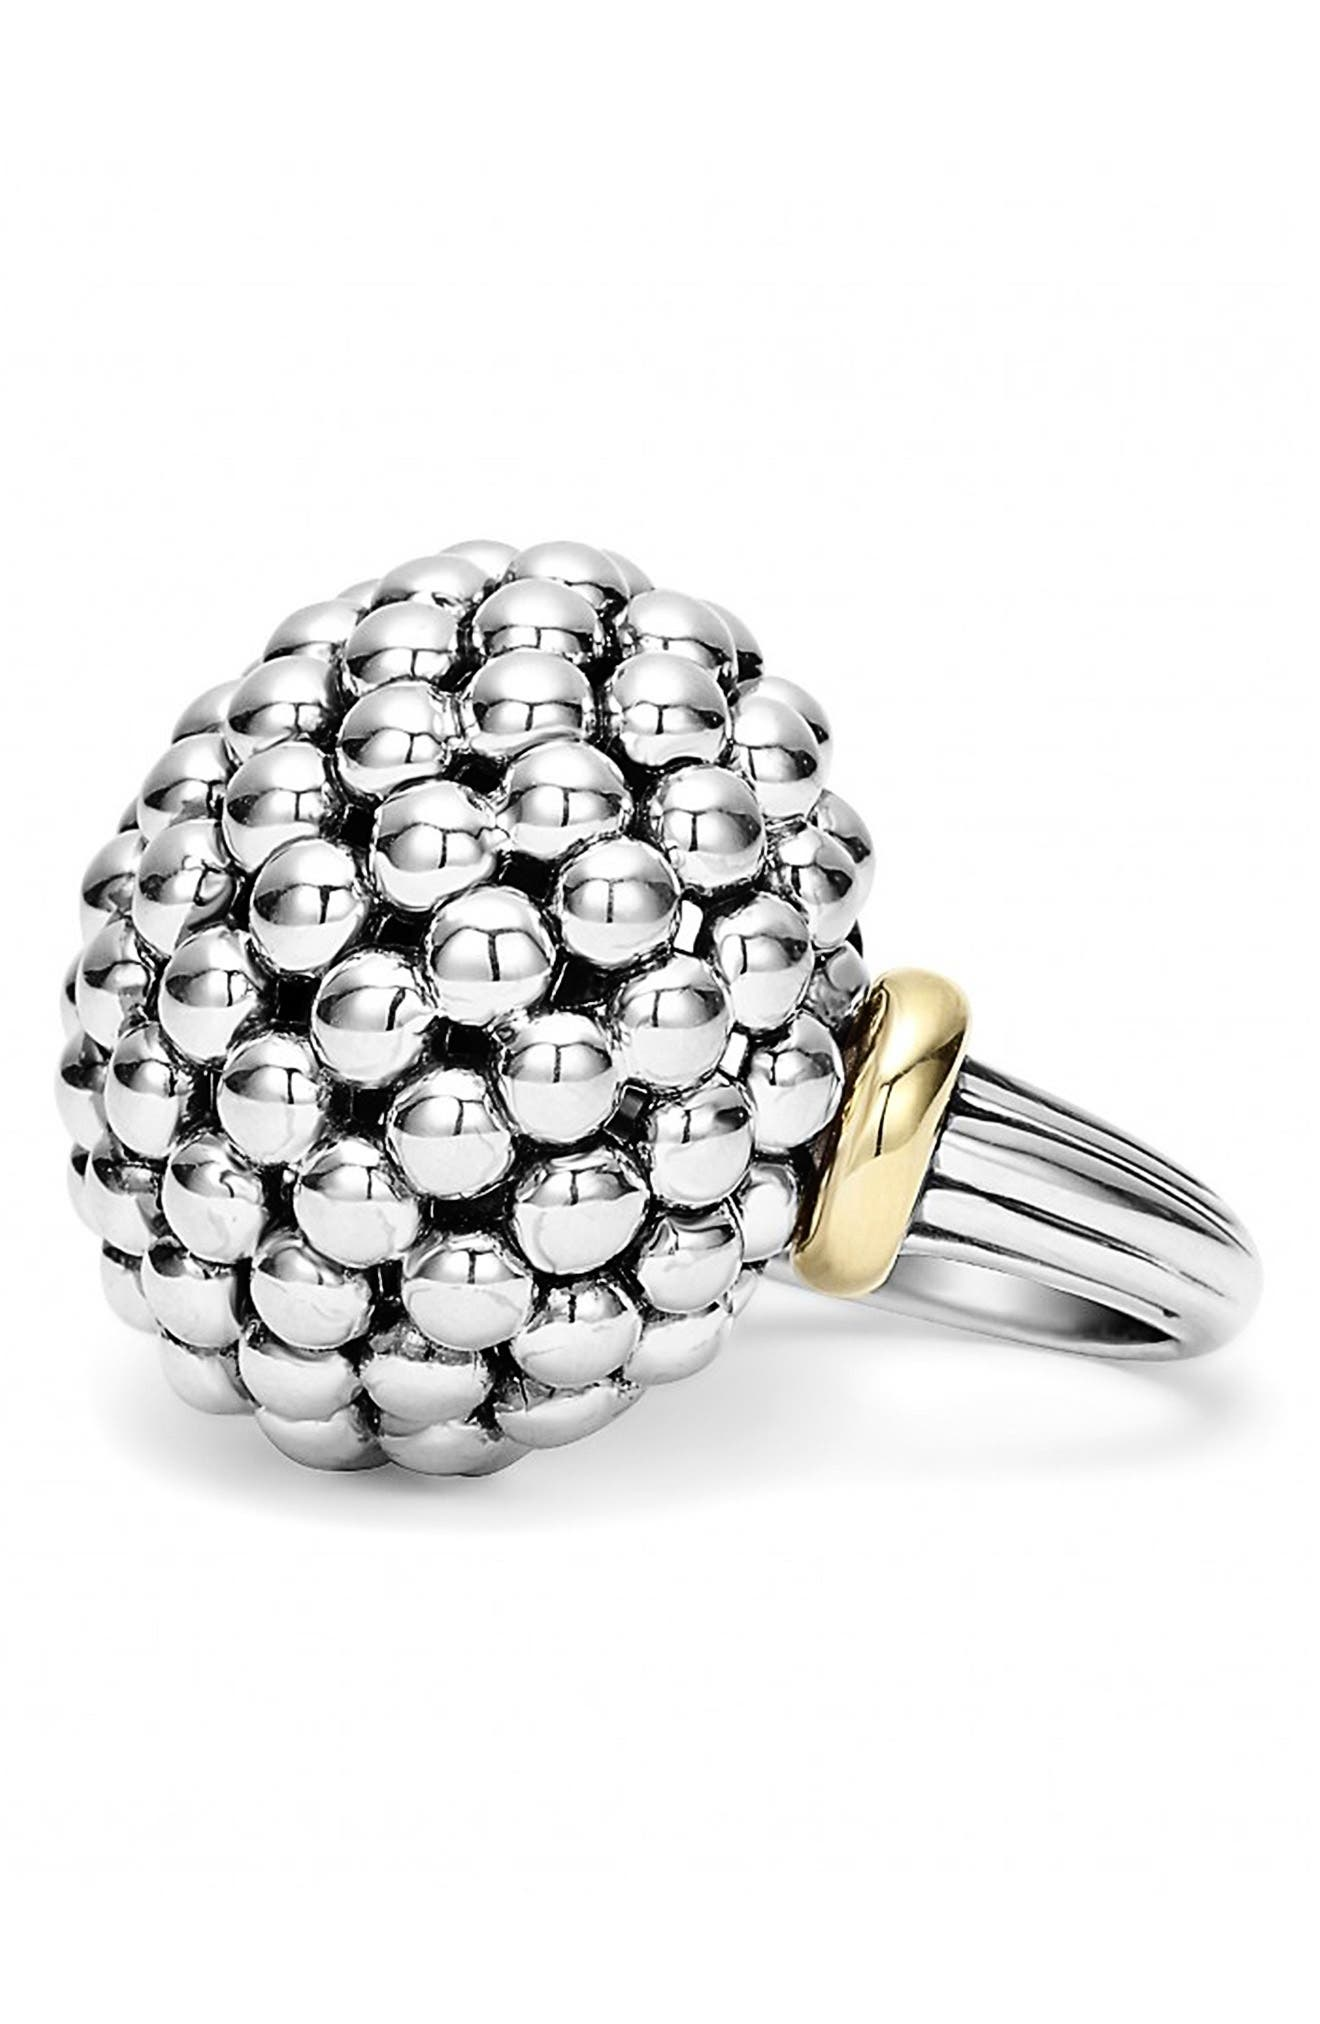 'Caviar Forever' Large Dome Ring,                             Alternate thumbnail 4, color,                             040